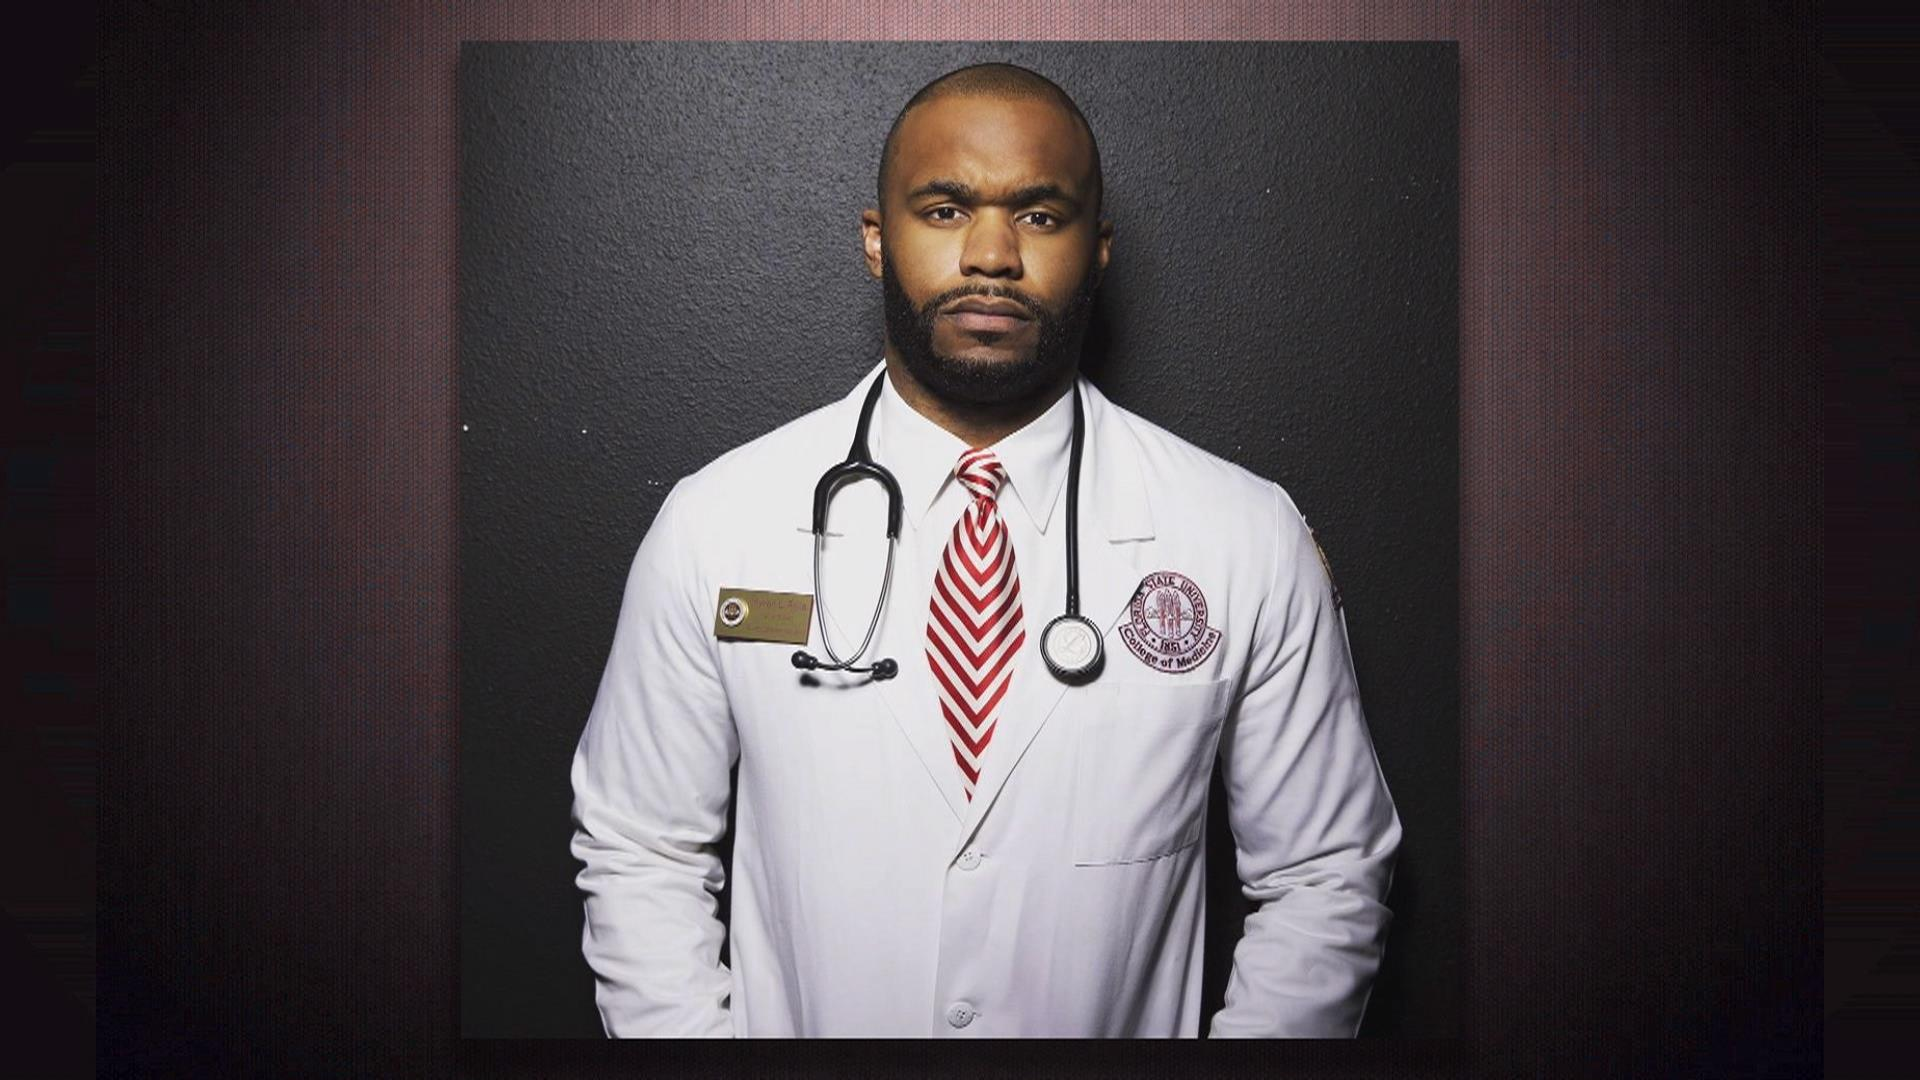 Bahamian Rhodes Scholar Myron Rolle accused of sexual harassment